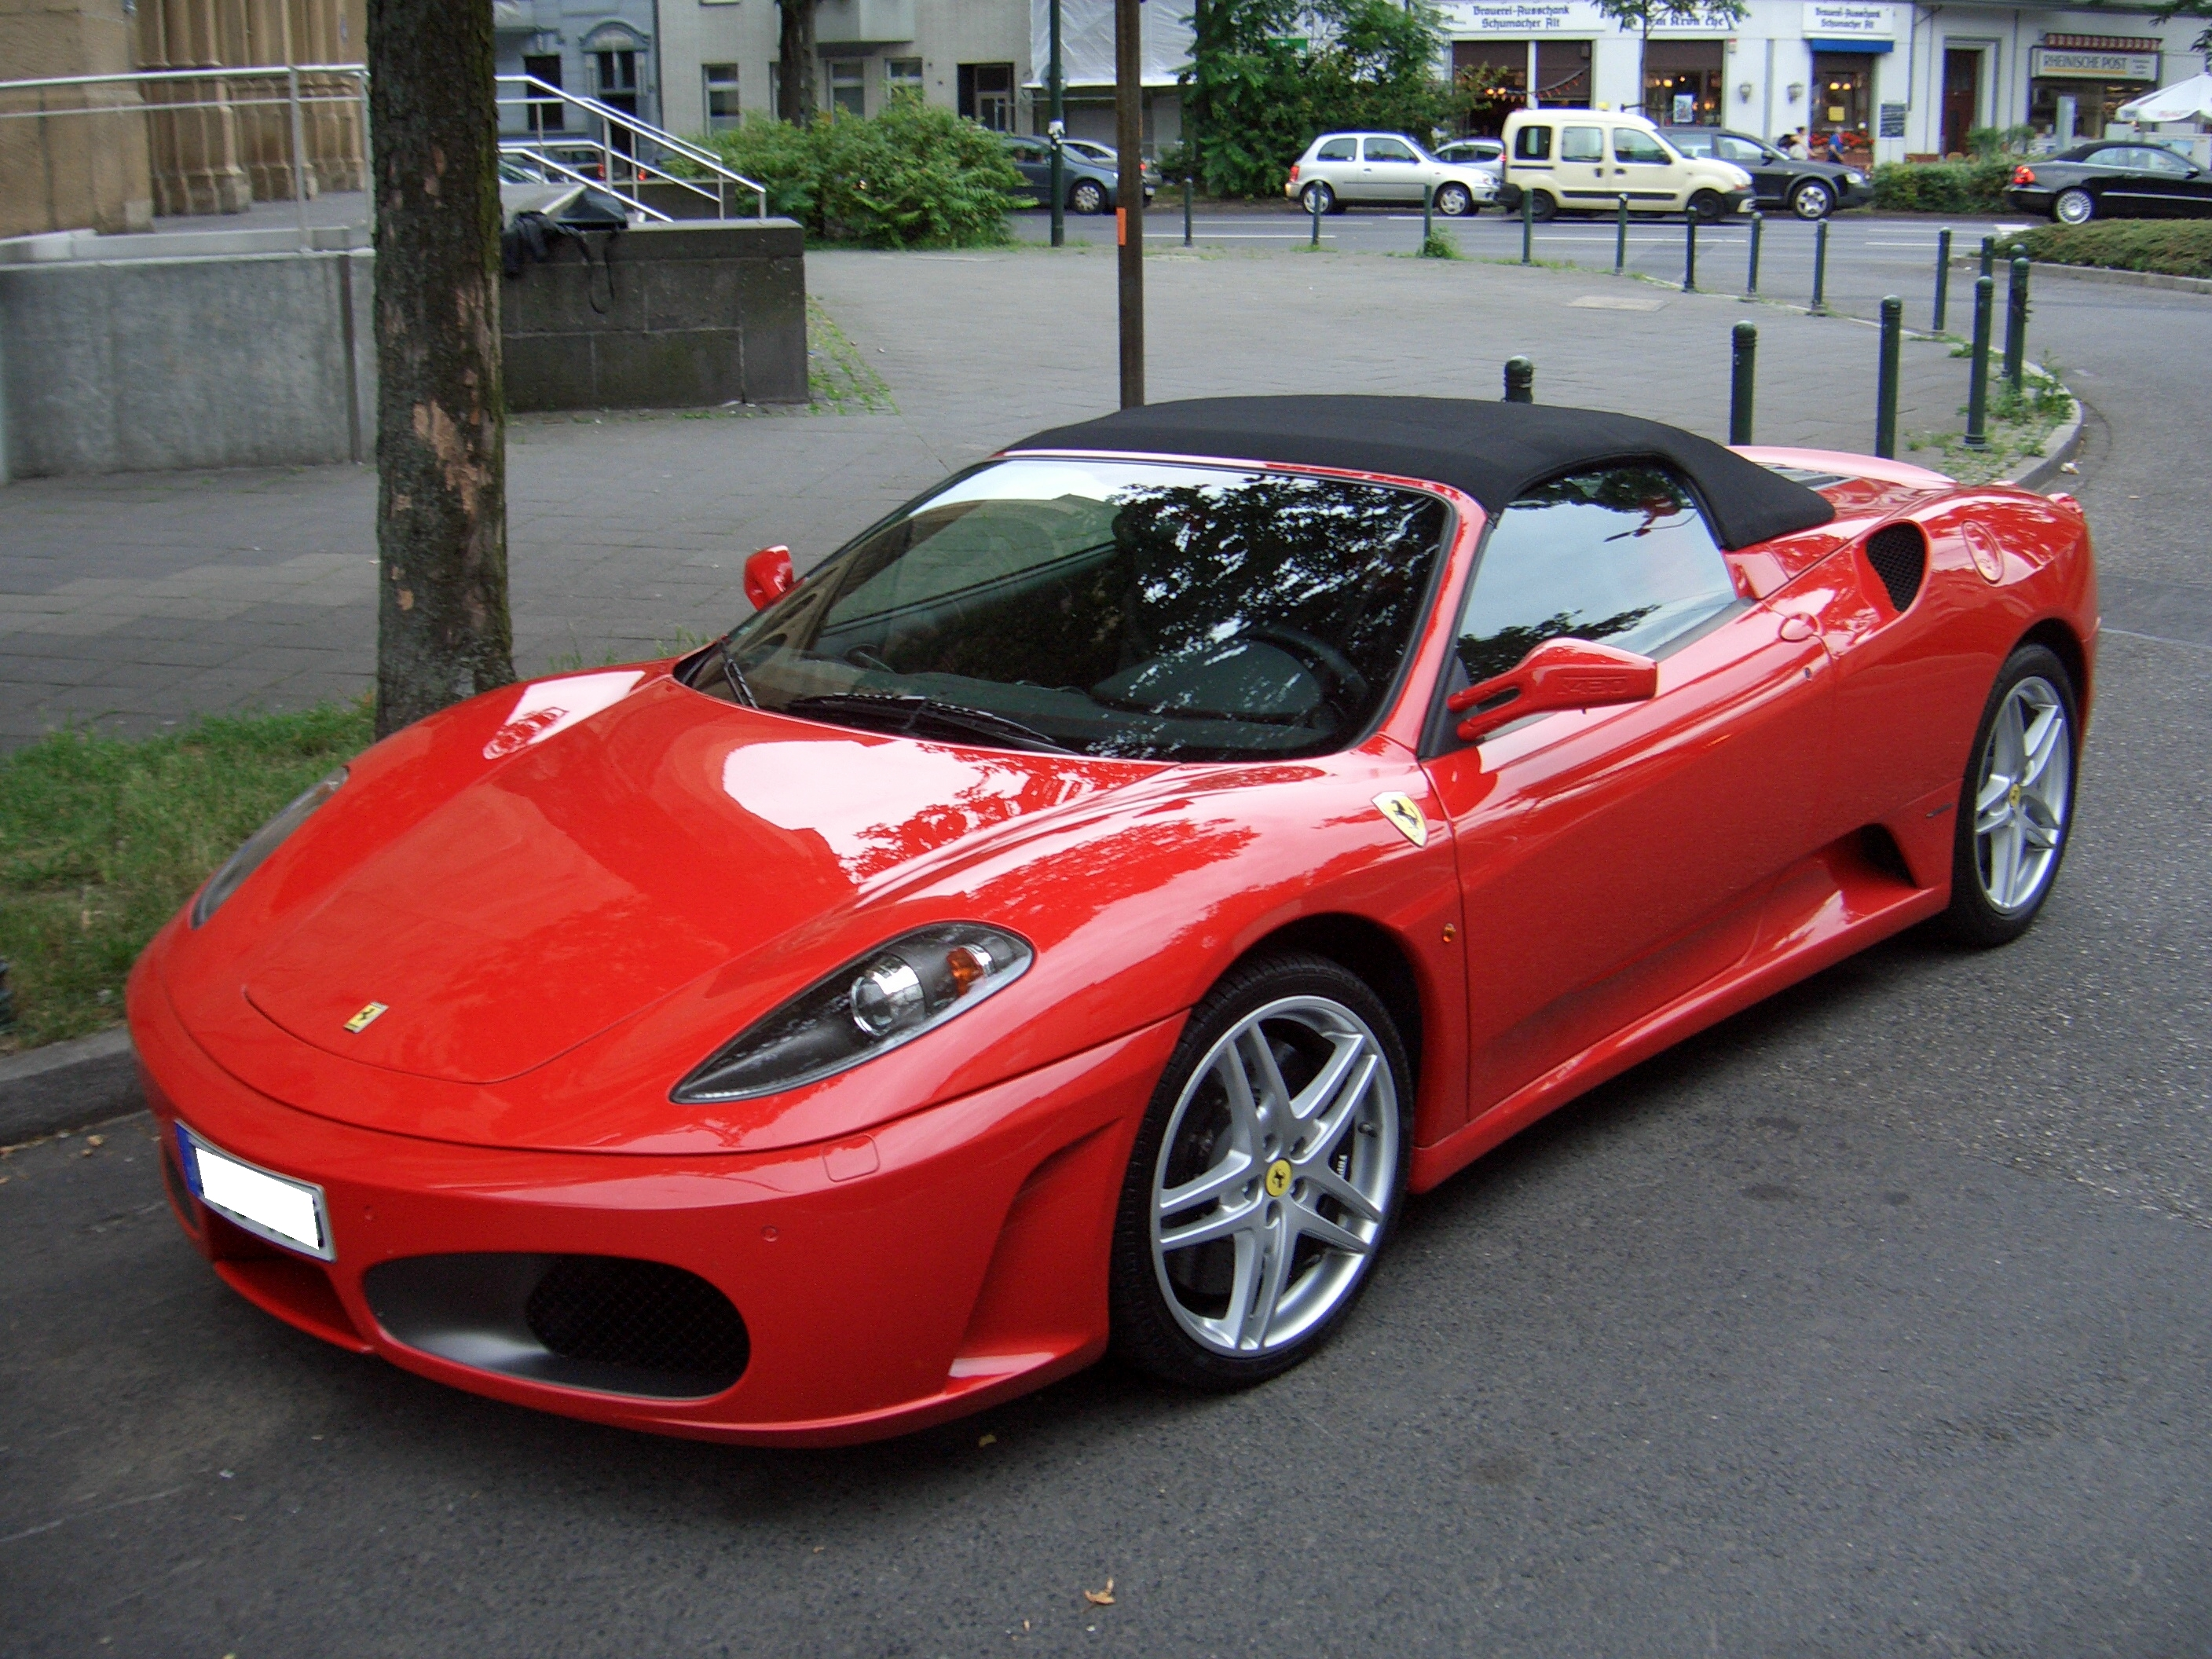 file ferrari f430 spider from 2004 frontleft 2008 06 05 wikimedia commons. Black Bedroom Furniture Sets. Home Design Ideas